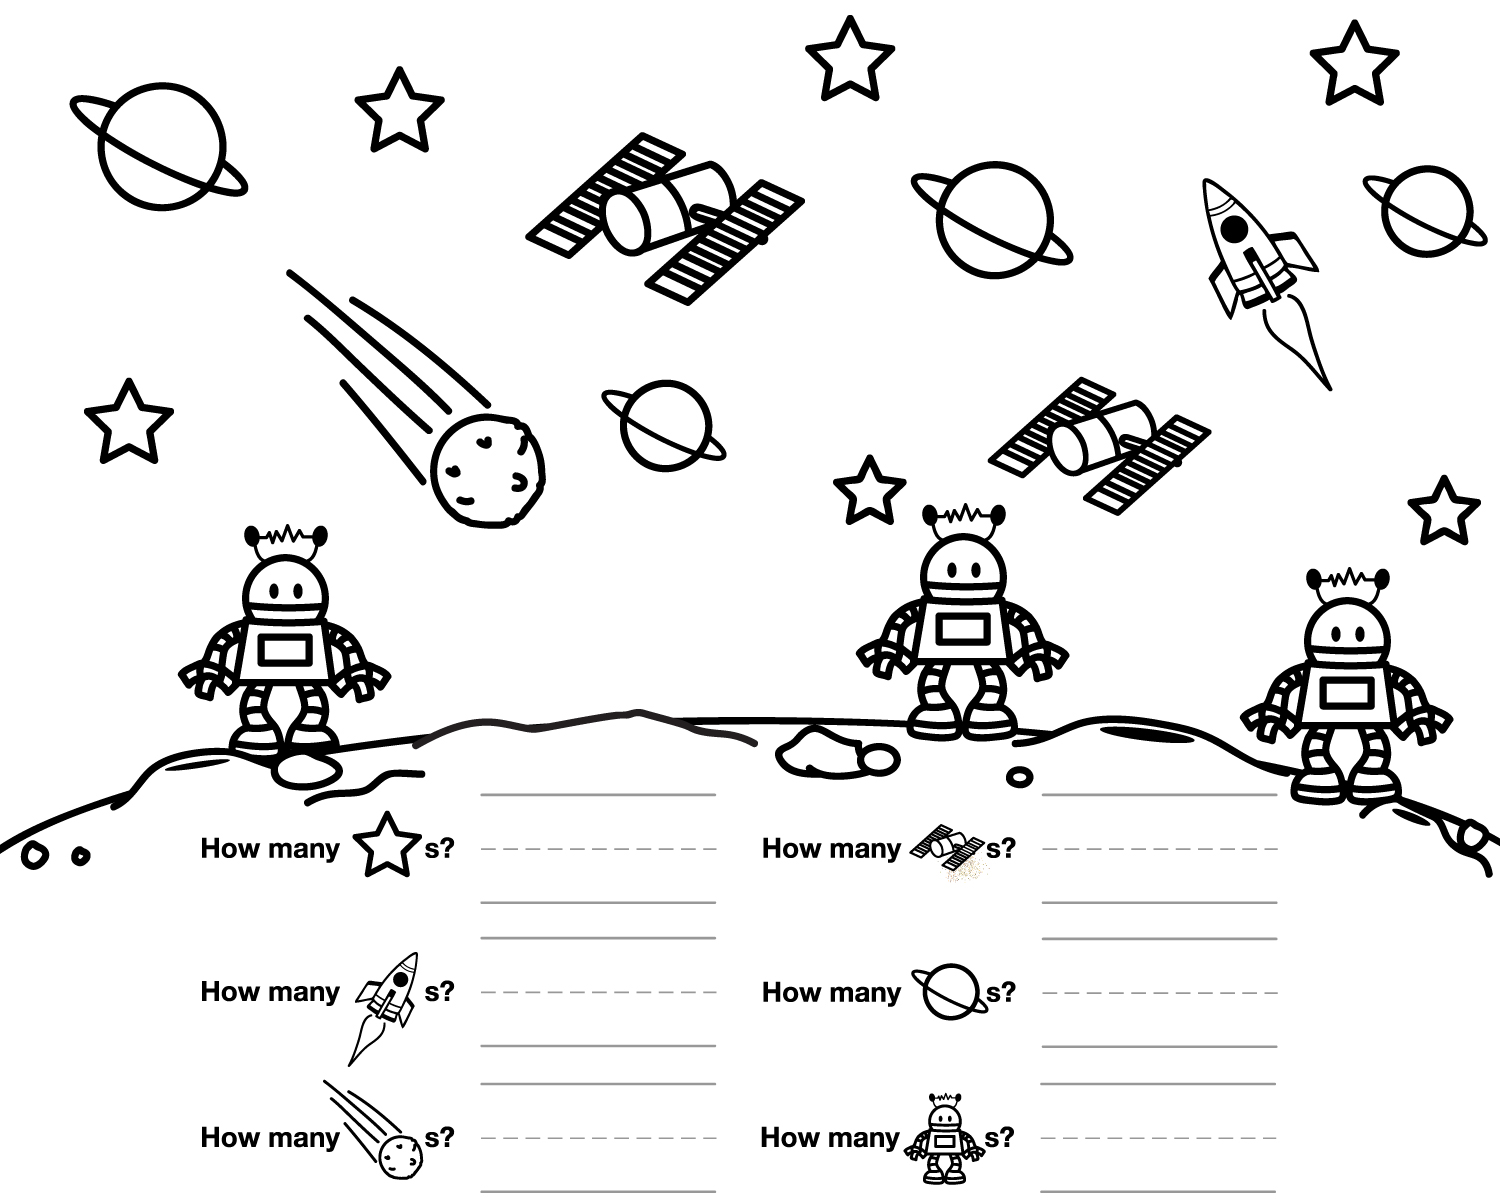 Other Graphical Works: For Kids To Color And Count